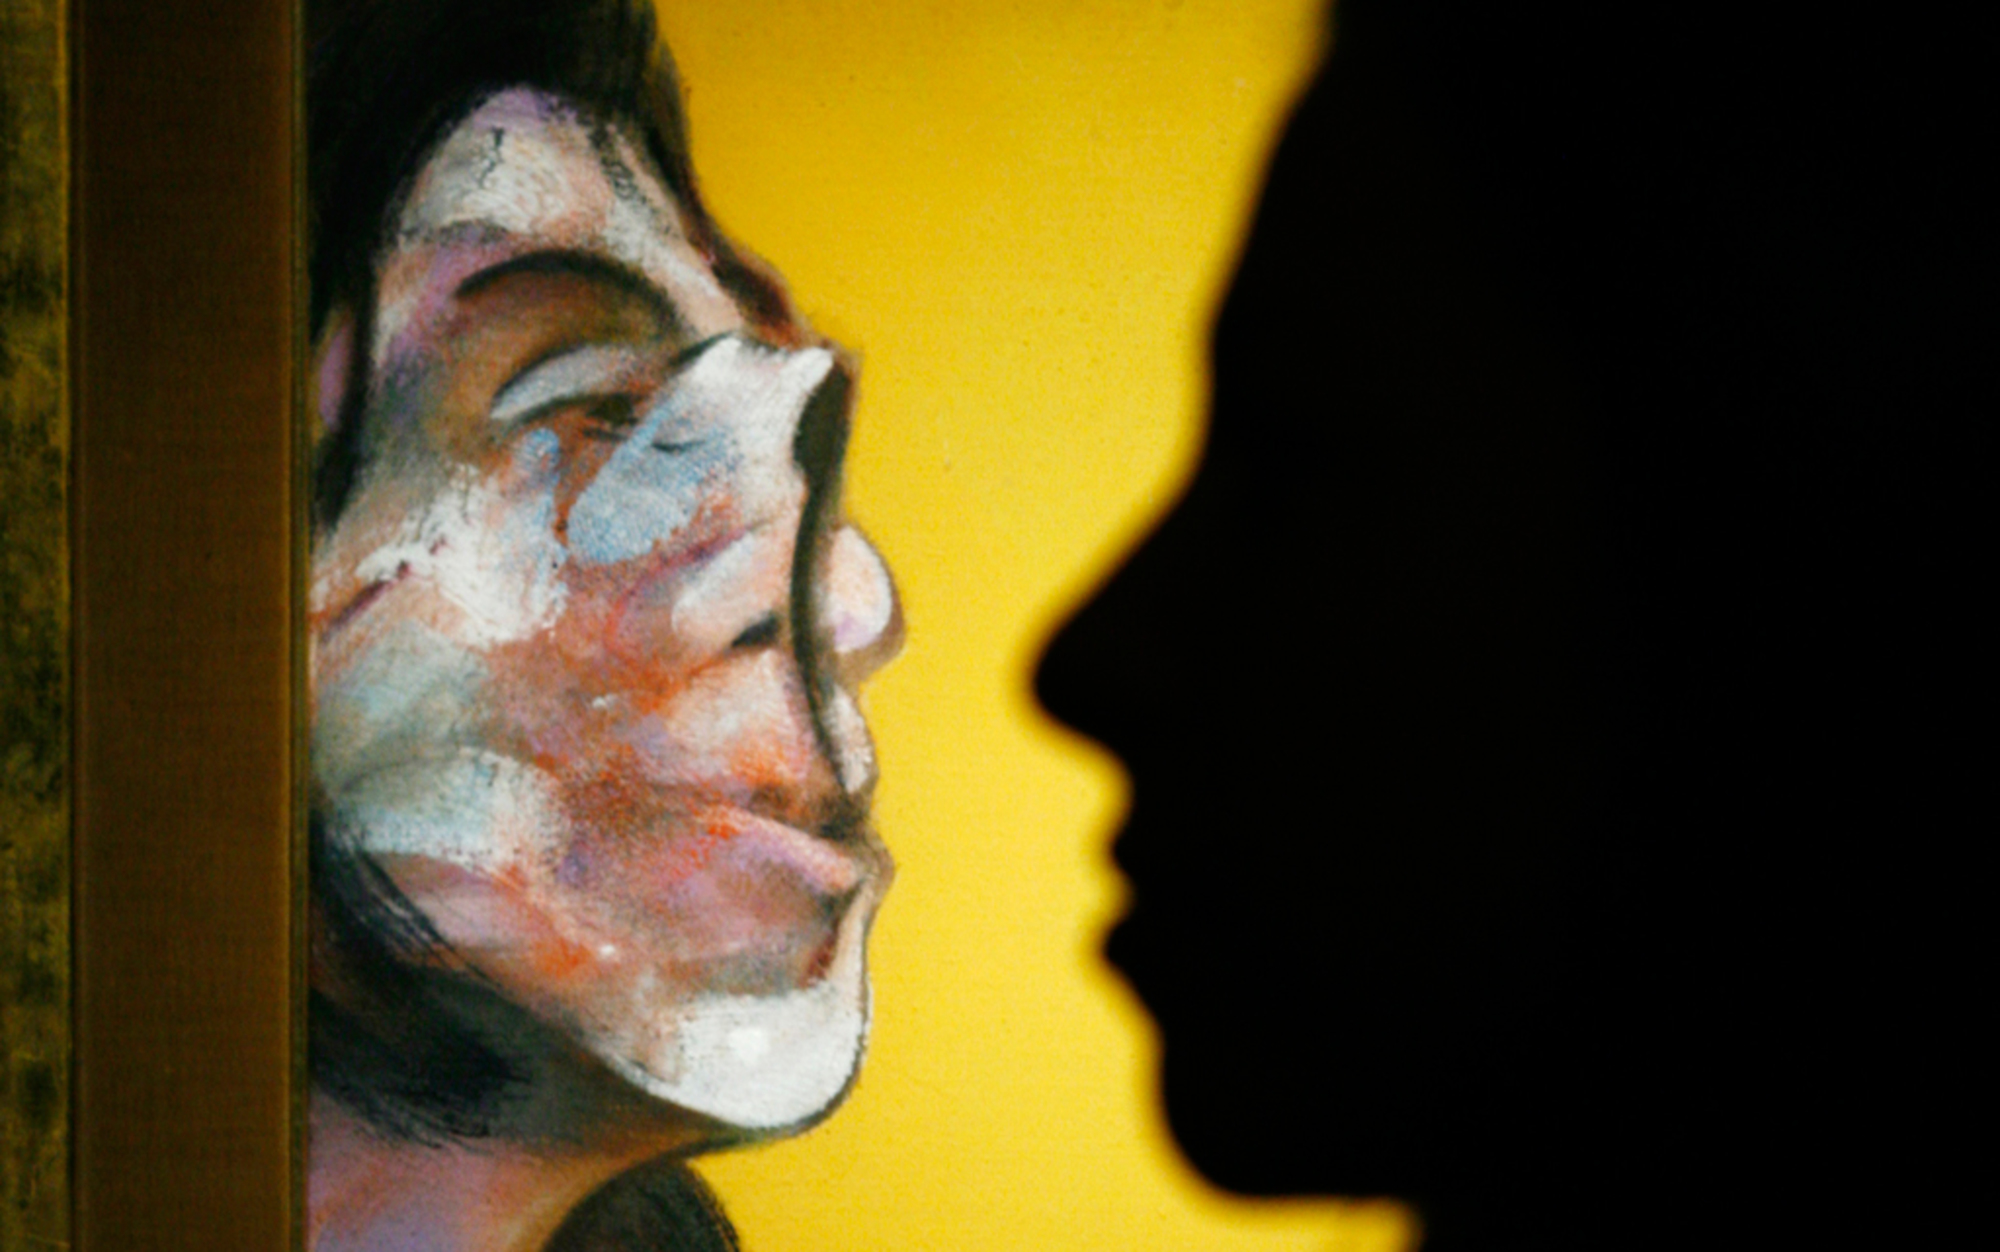 Should hallucinatory voices be ignored or befriended? – Shruti Ravindran